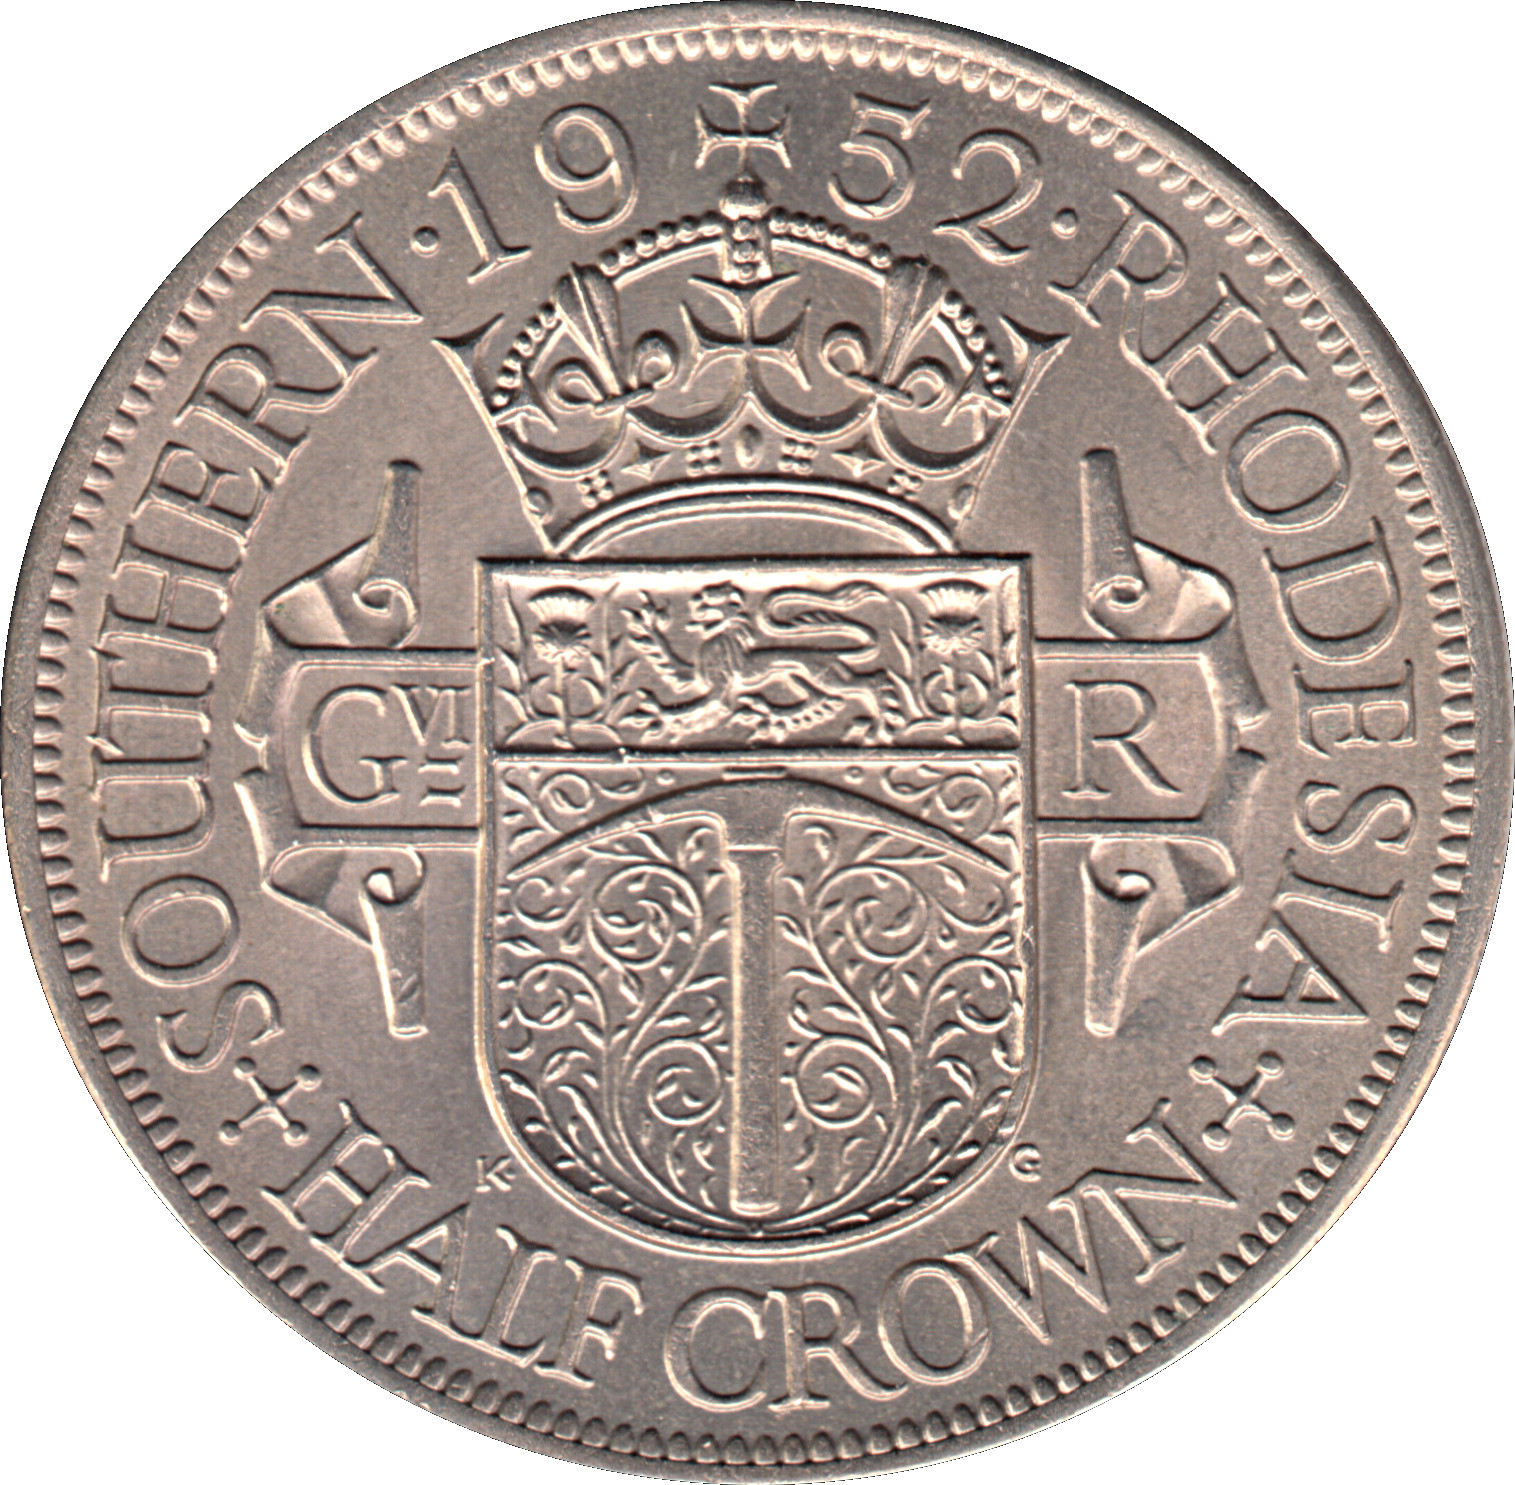 RARE VINTAGE 3 PENCE COIN 1949 YEAR KM#20 SOUTHERN RHODESIA